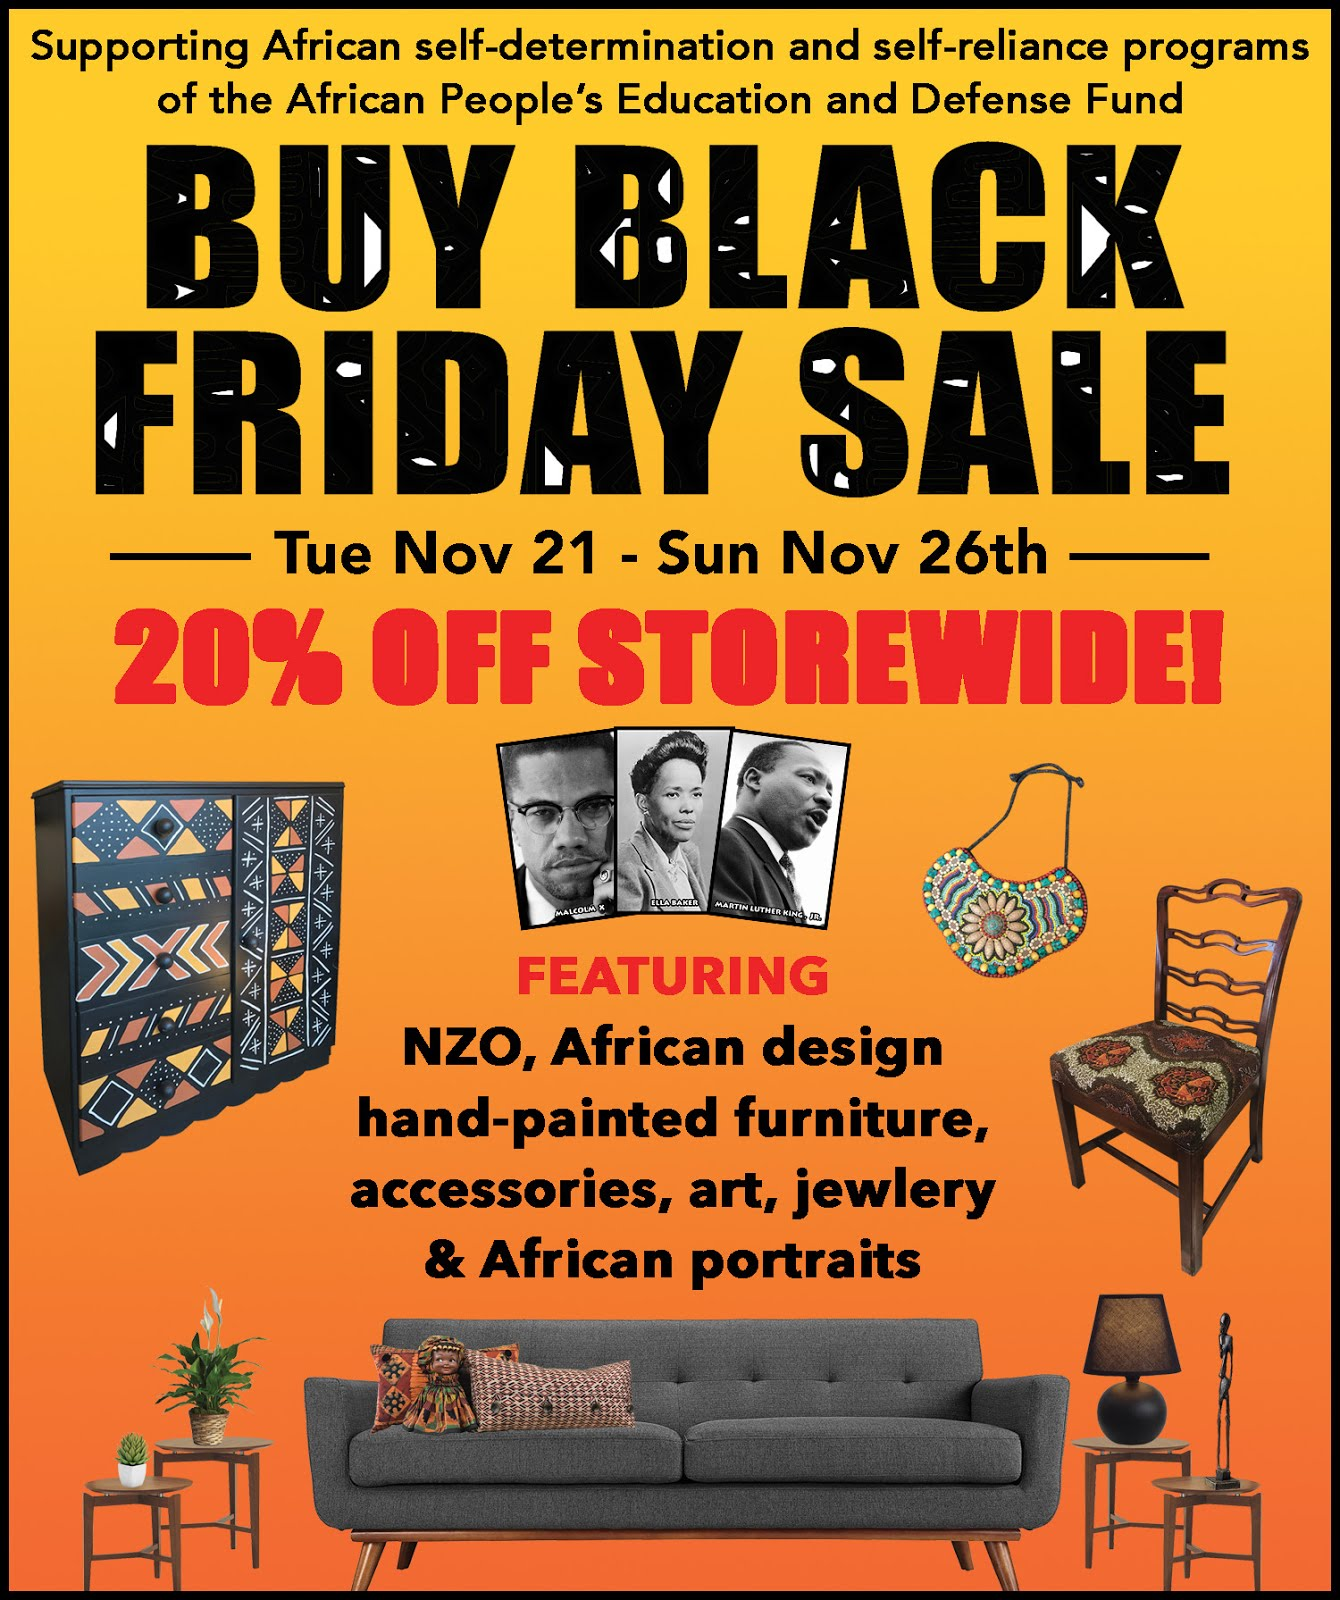 BUY BLACK FRIDAY SALE!